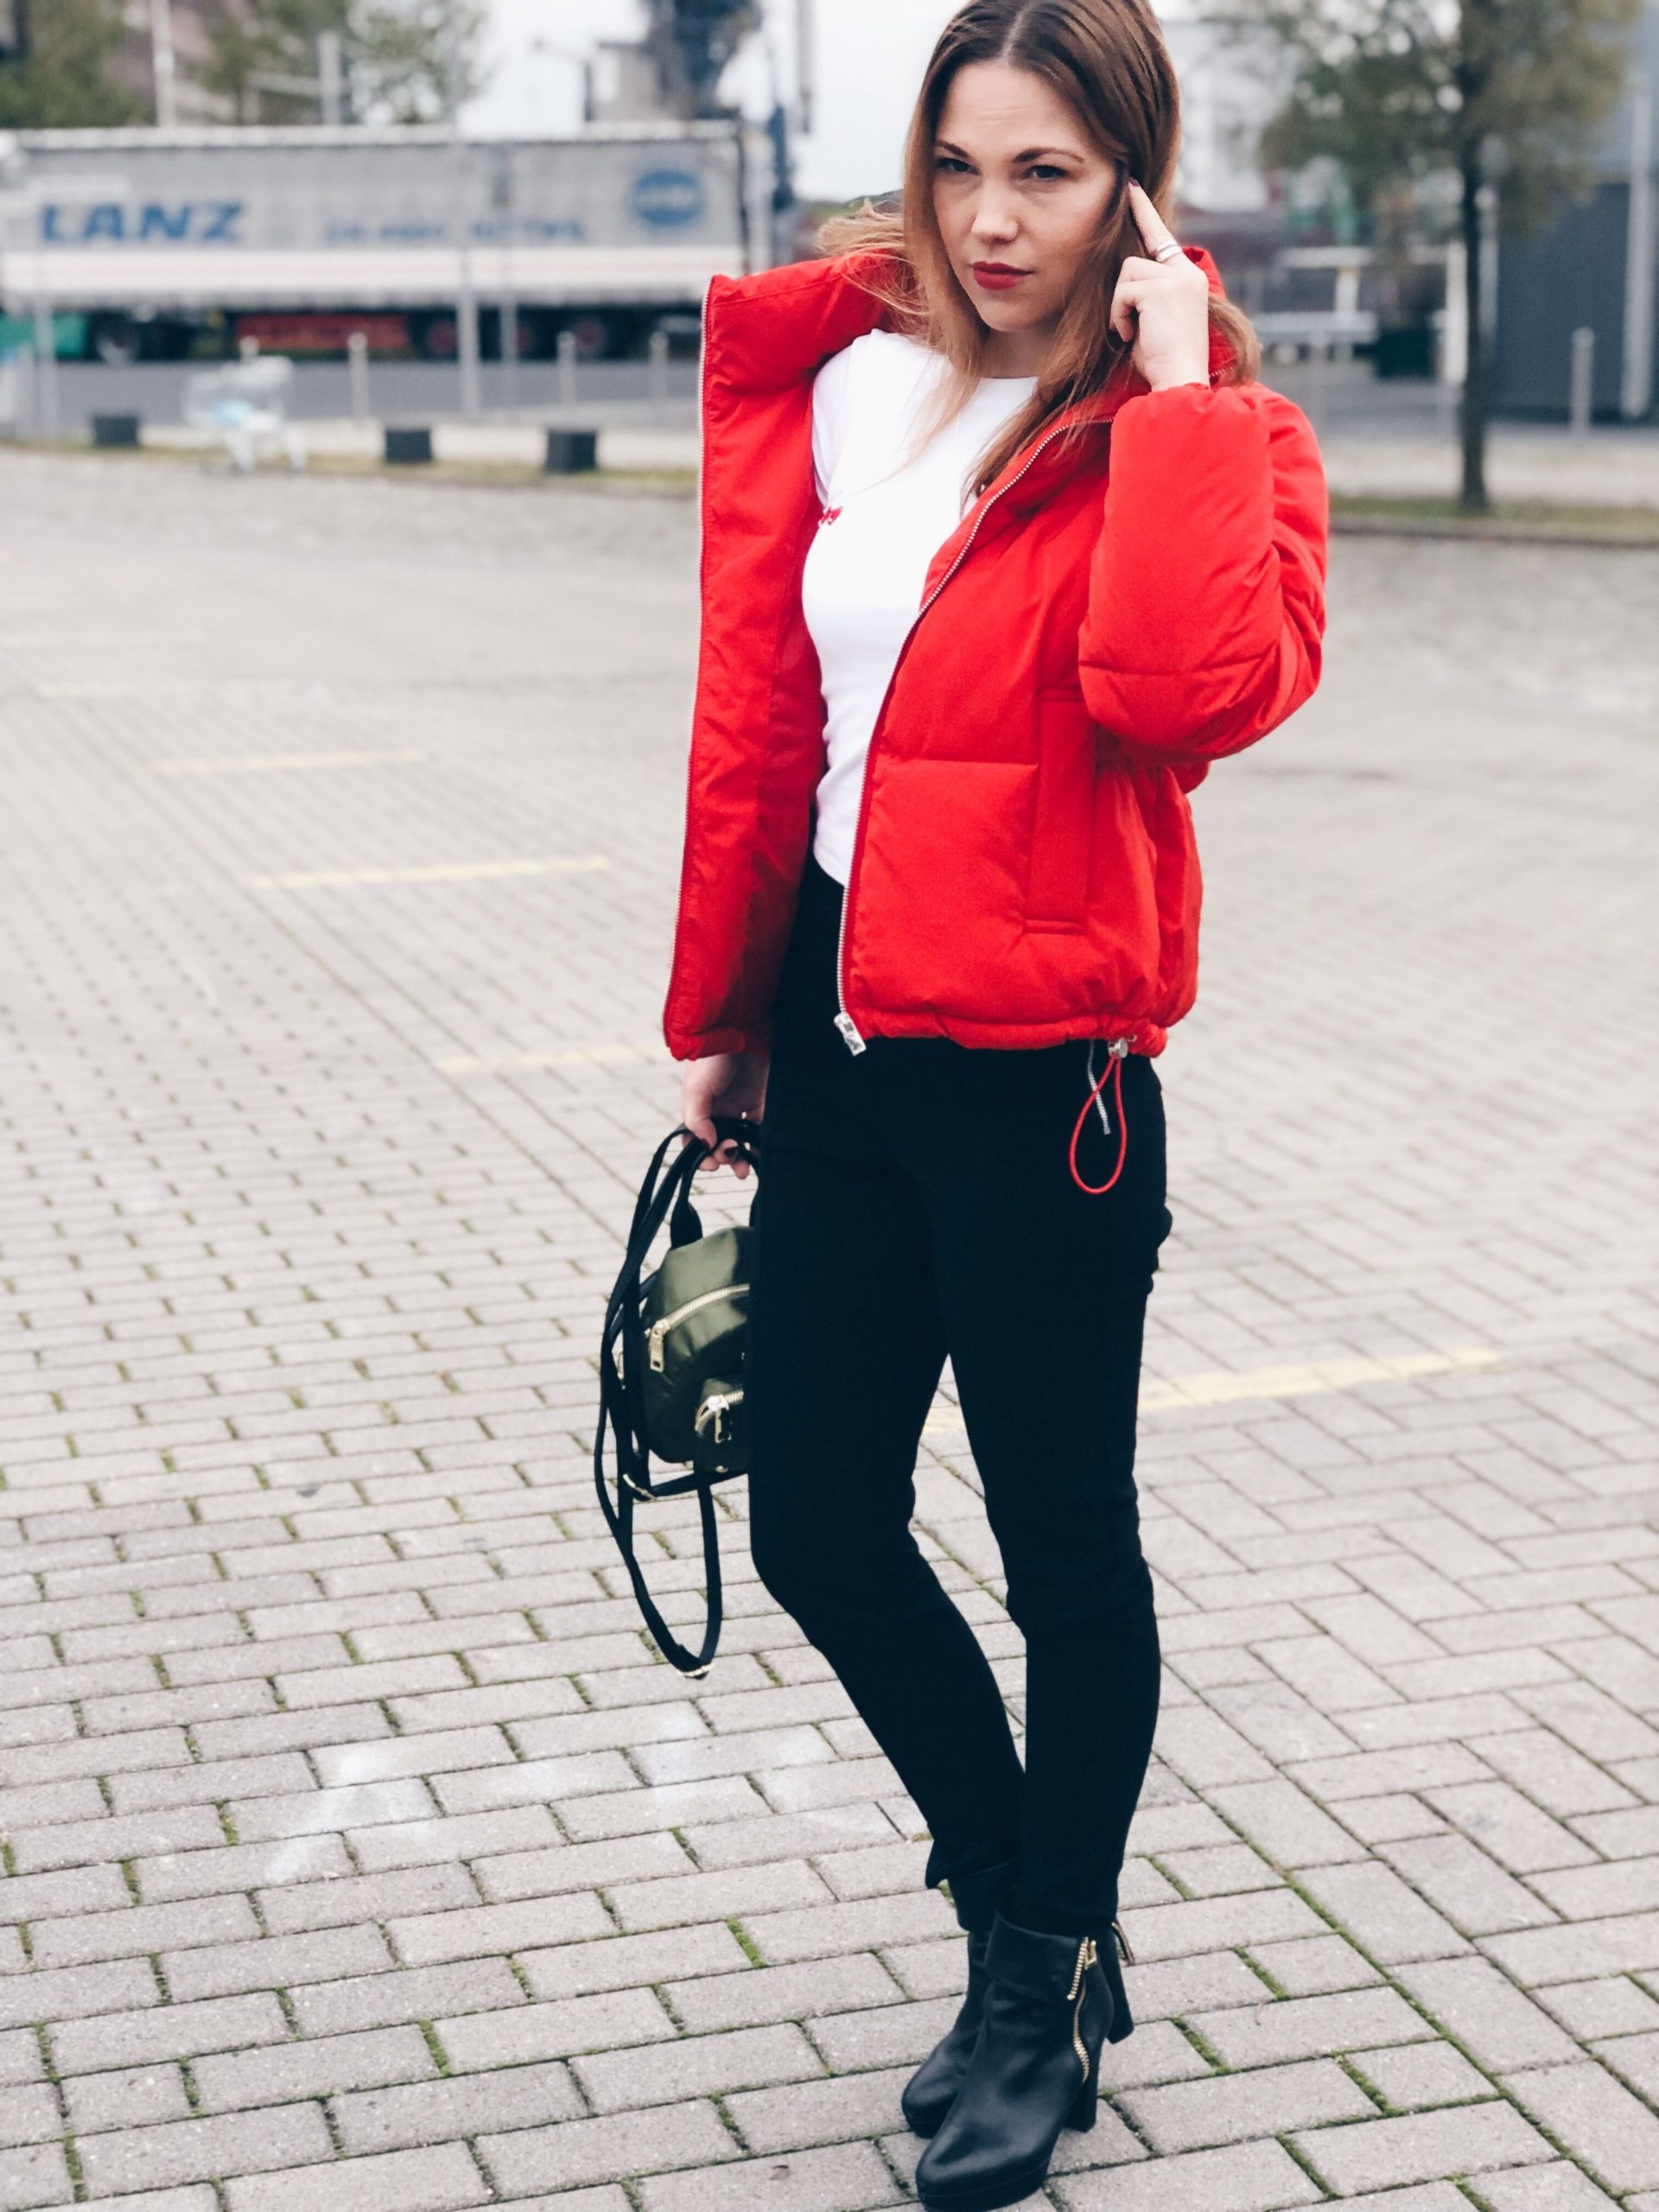 Rote Windbreaker Outfit-Ideen